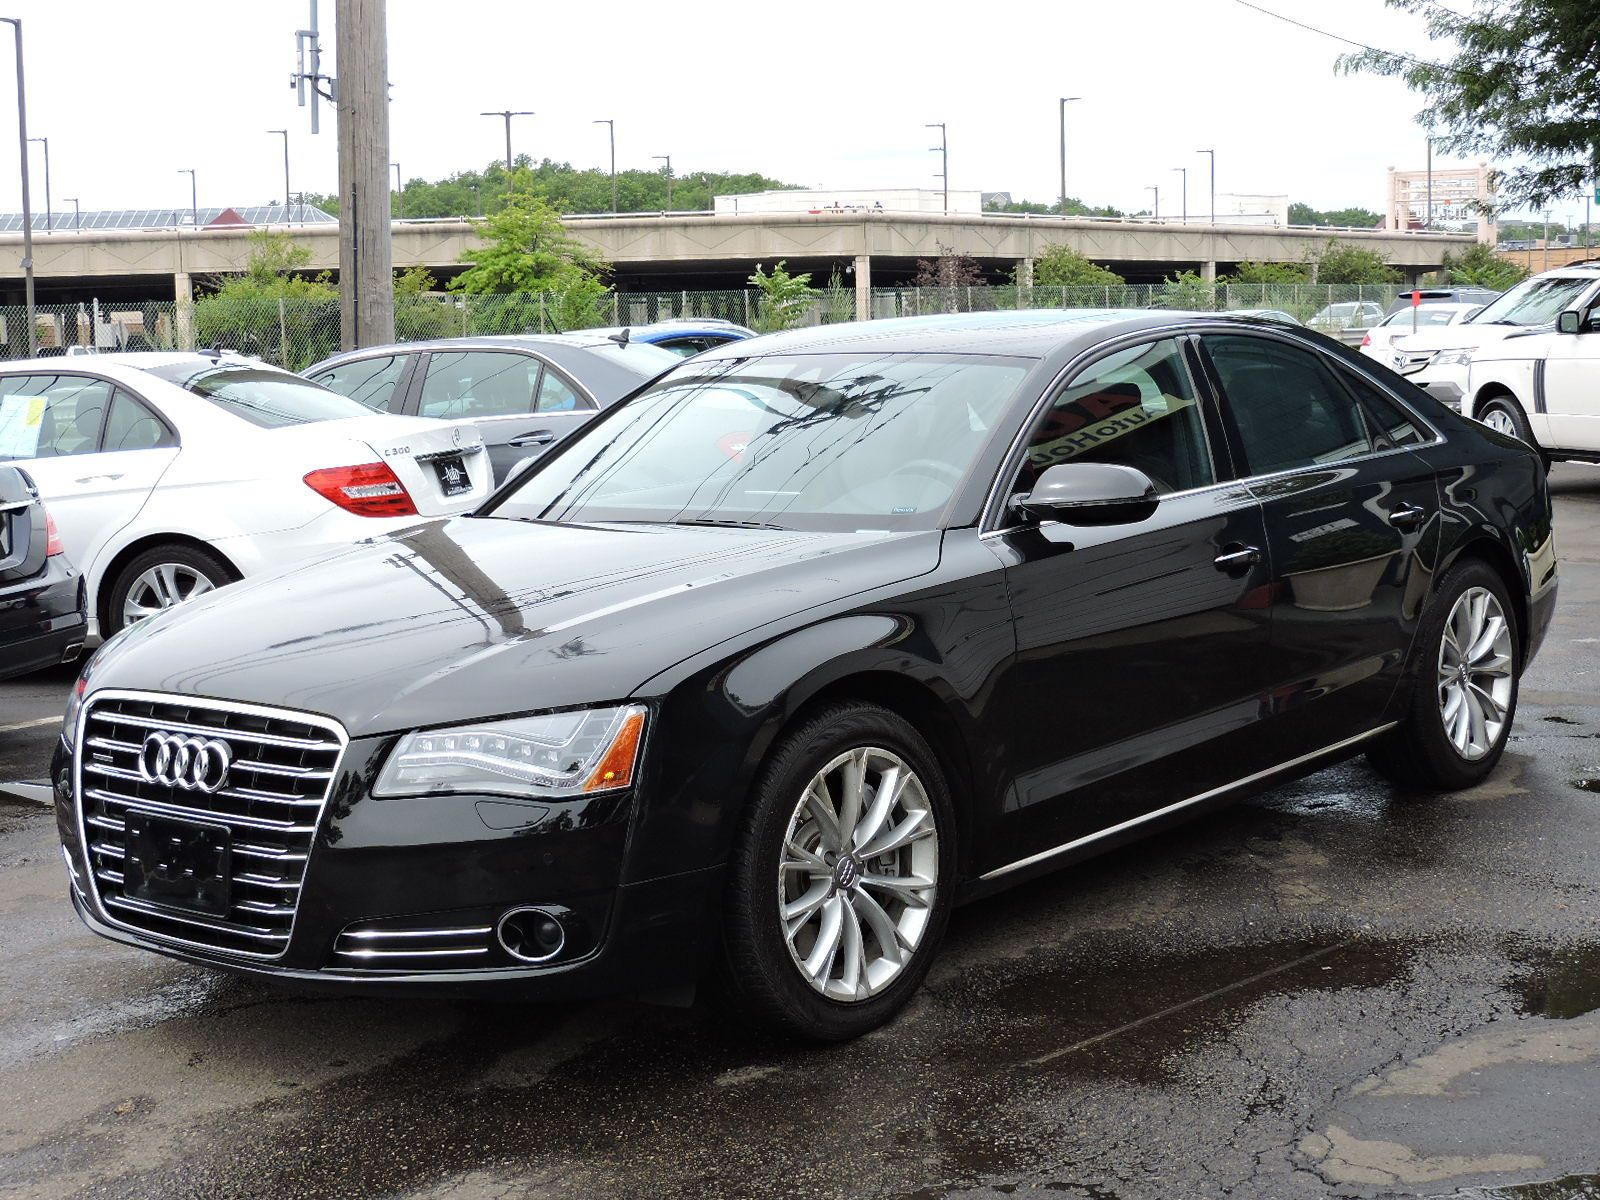 service manual how to disconnect heat seat 2011 audi a8 2011 audi a8 3 0 tdi long exclusive. Black Bedroom Furniture Sets. Home Design Ideas